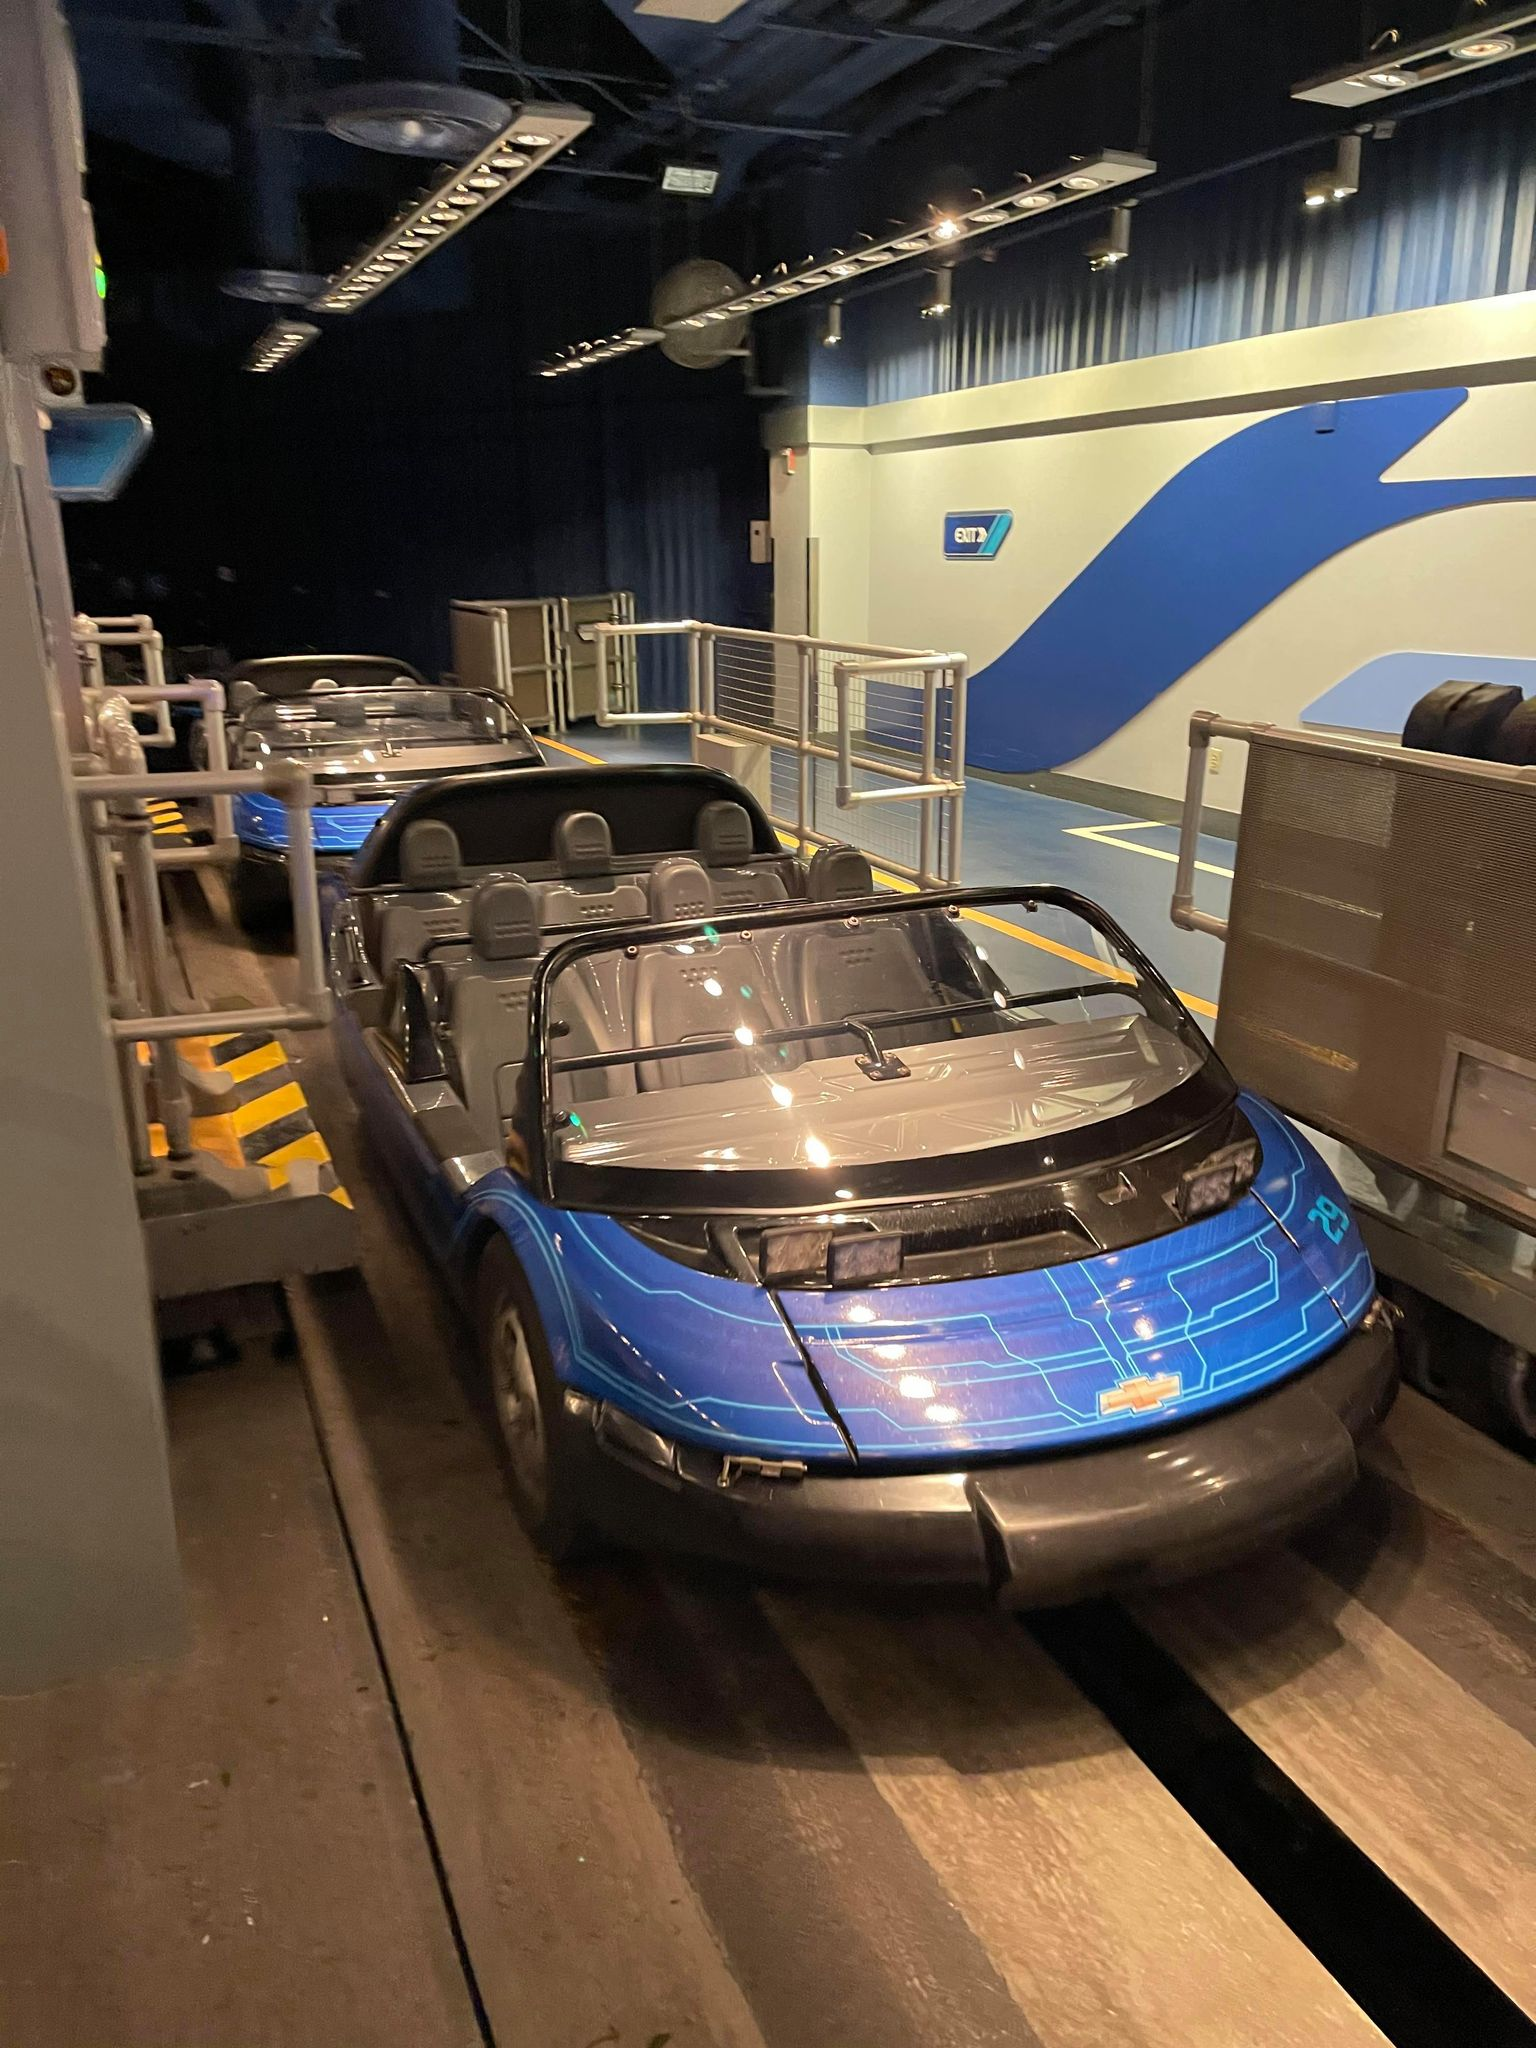 Test Track ride car at Epcot in Disney World